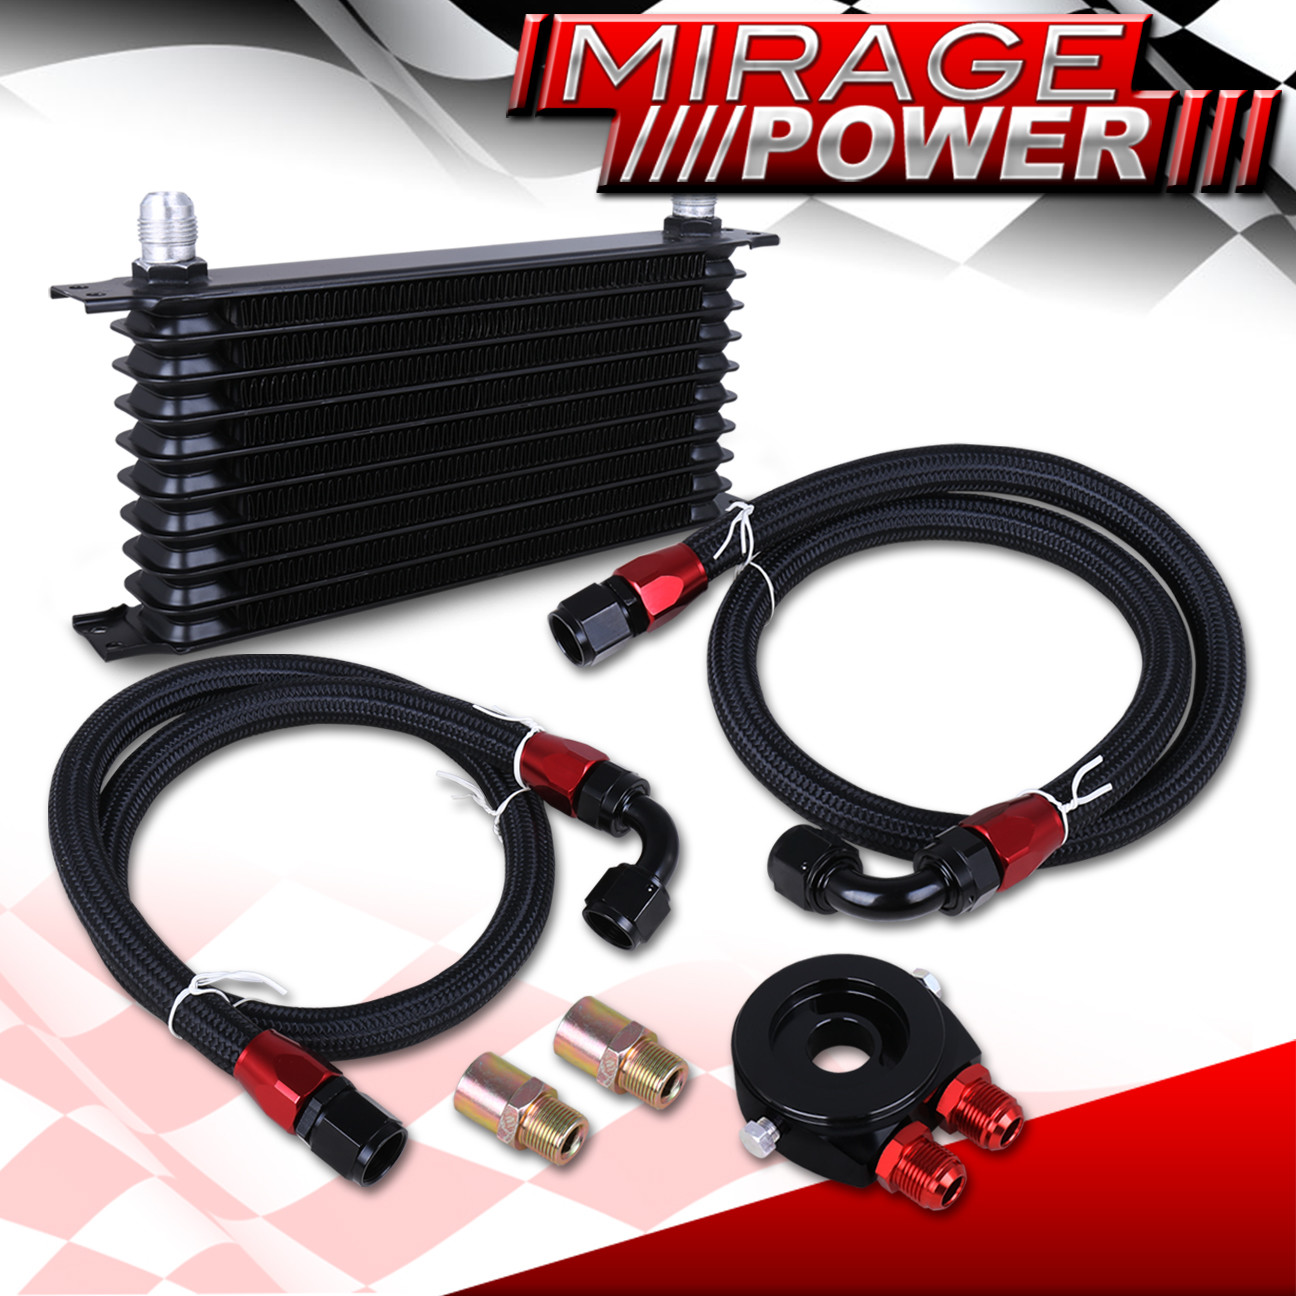 Differential Oil Cooler : An row engine diff trans oil cooler cooling adapter